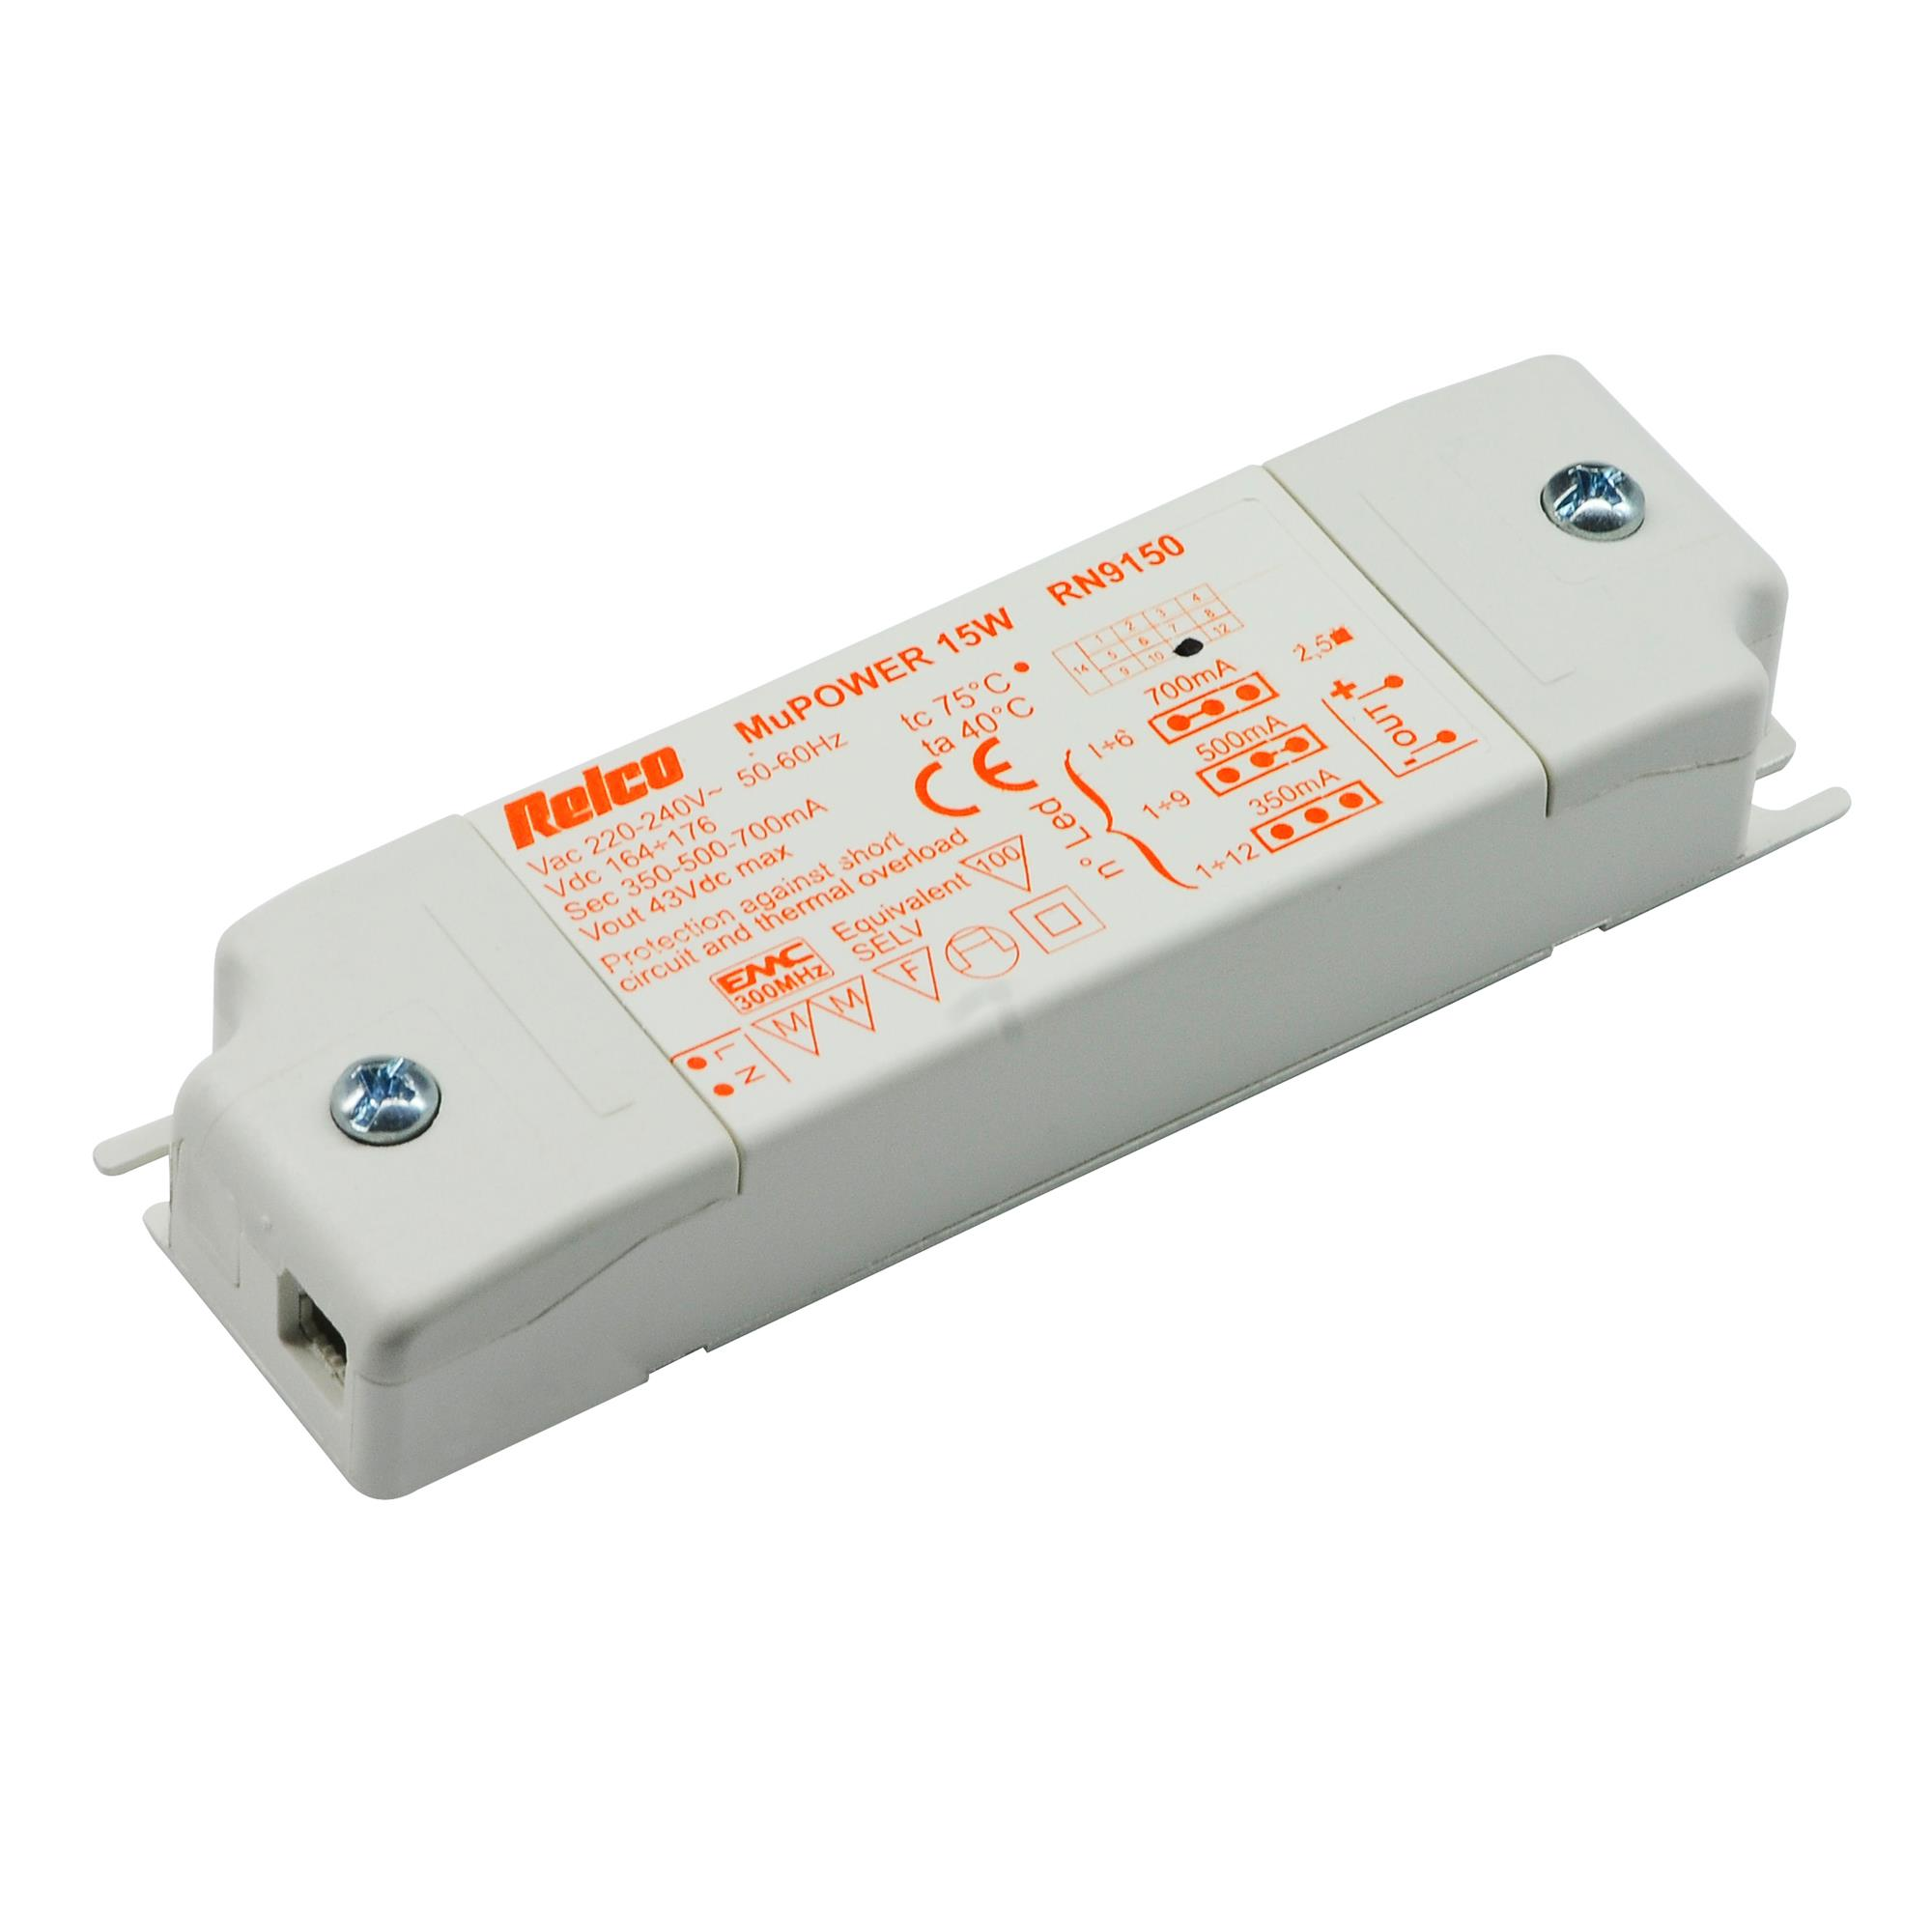 POWERLED driver 15W 350/500/700mA, 115x35x20mm